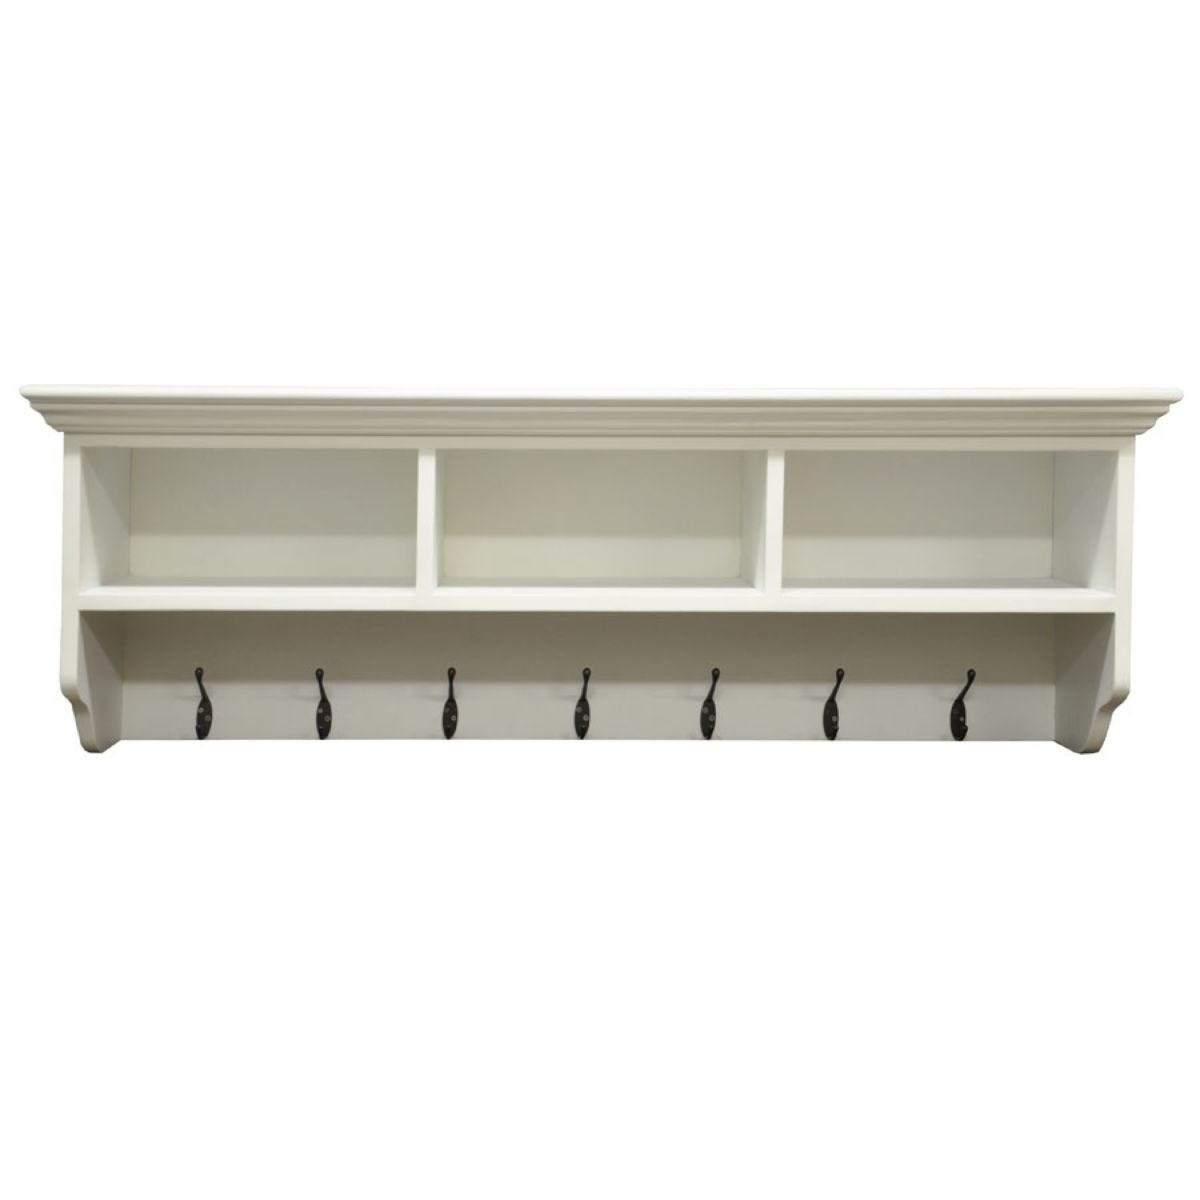 Large Hallway Coat Rack With Shelf and 7 by